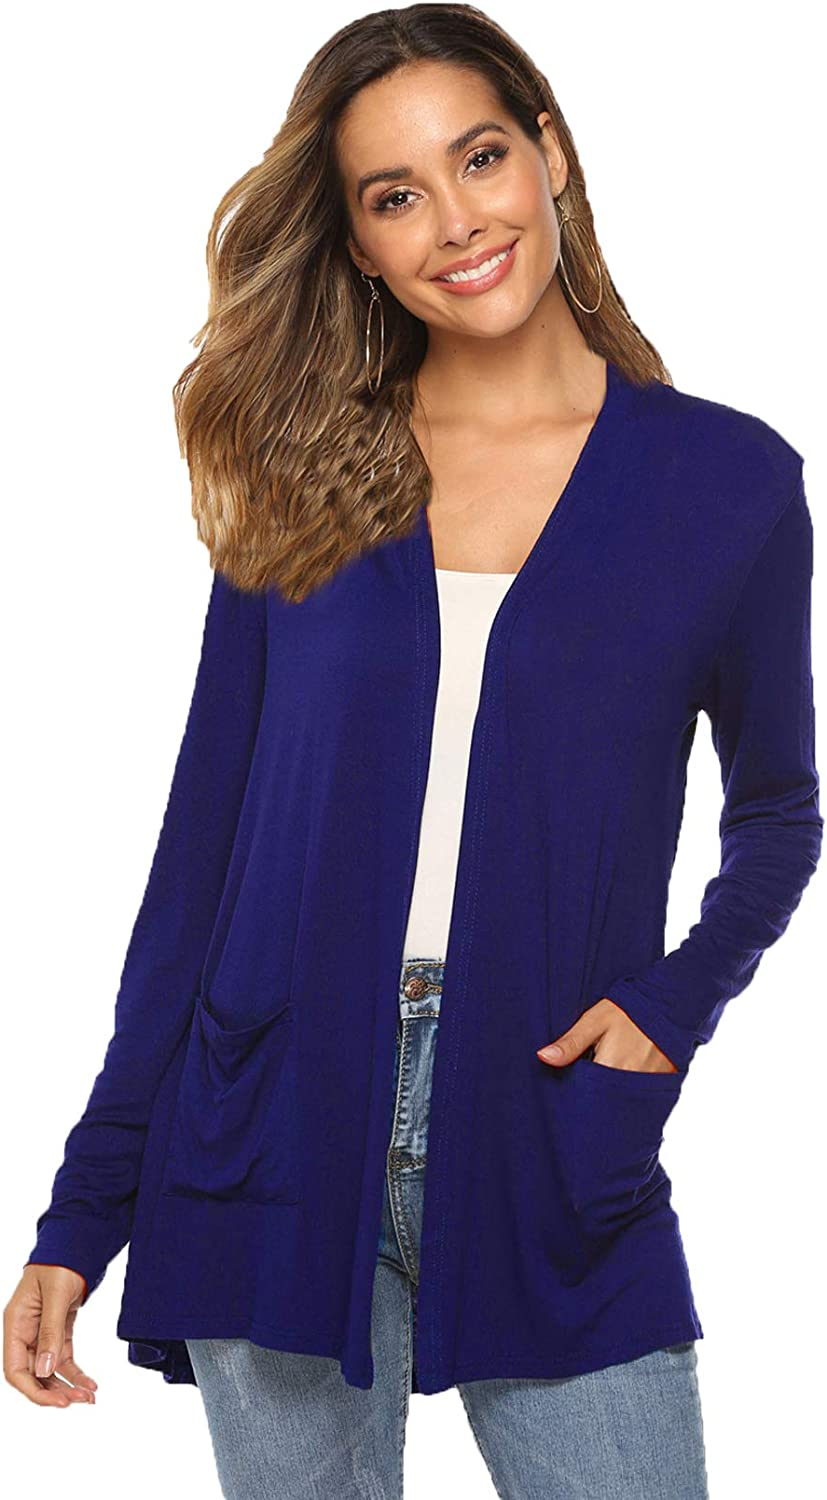 Women's Casual Lightweight Open Front Long Sleeve Cardigans with Pockets